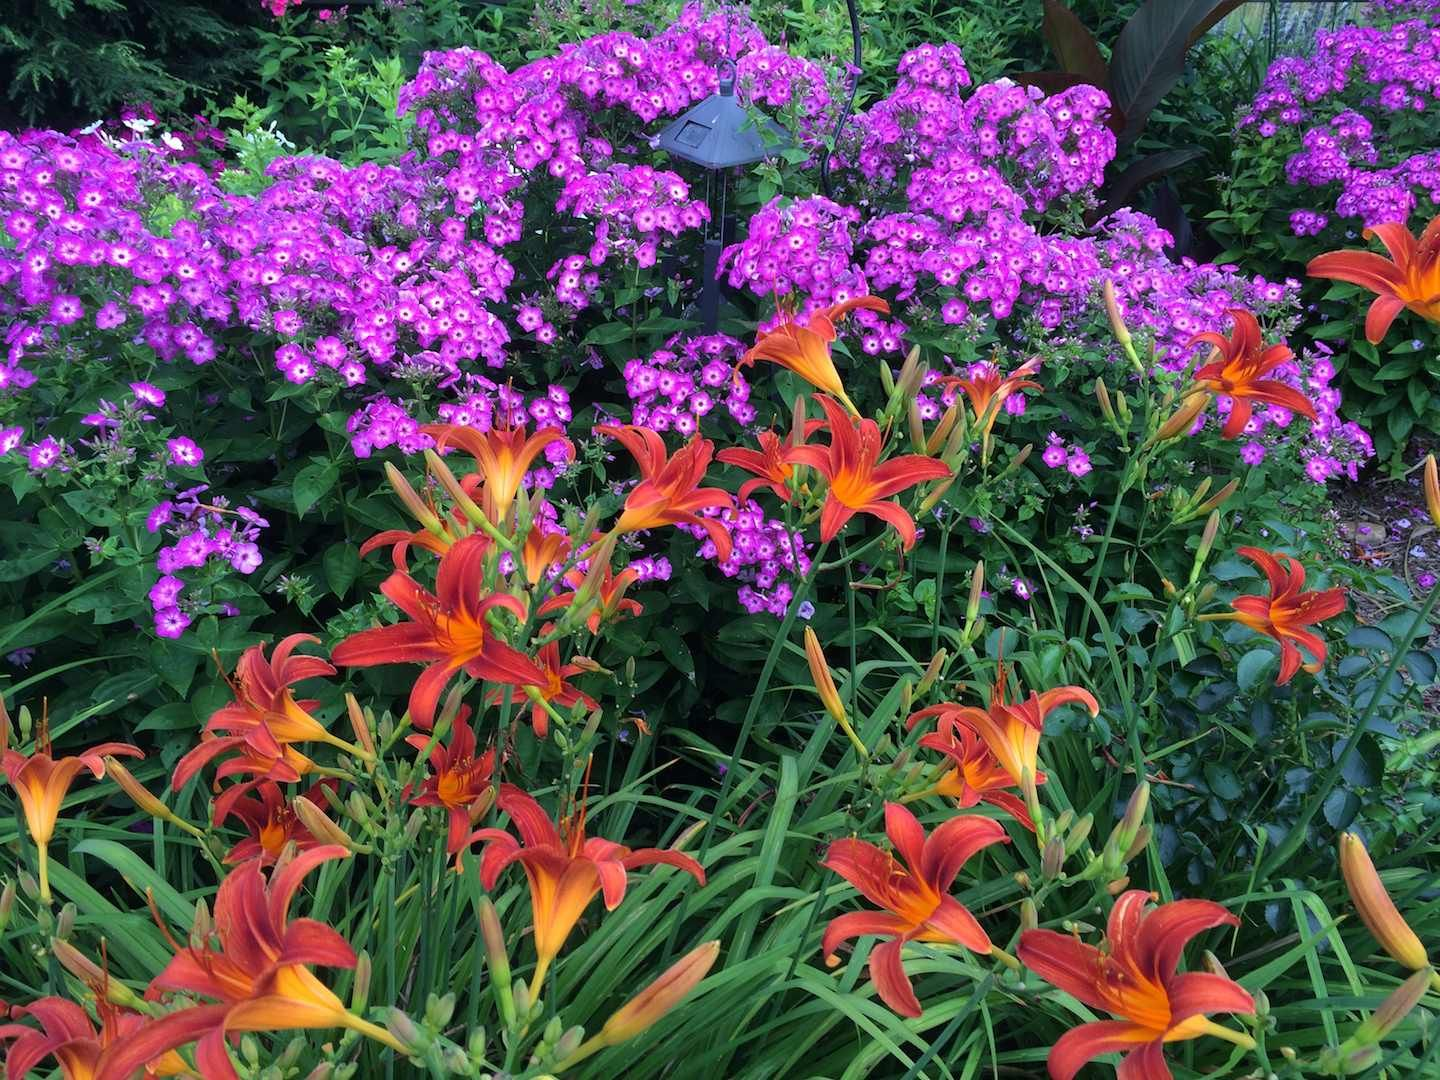 Volcano phlox 'Purple' contrasts nicely with these dark orange daylilies